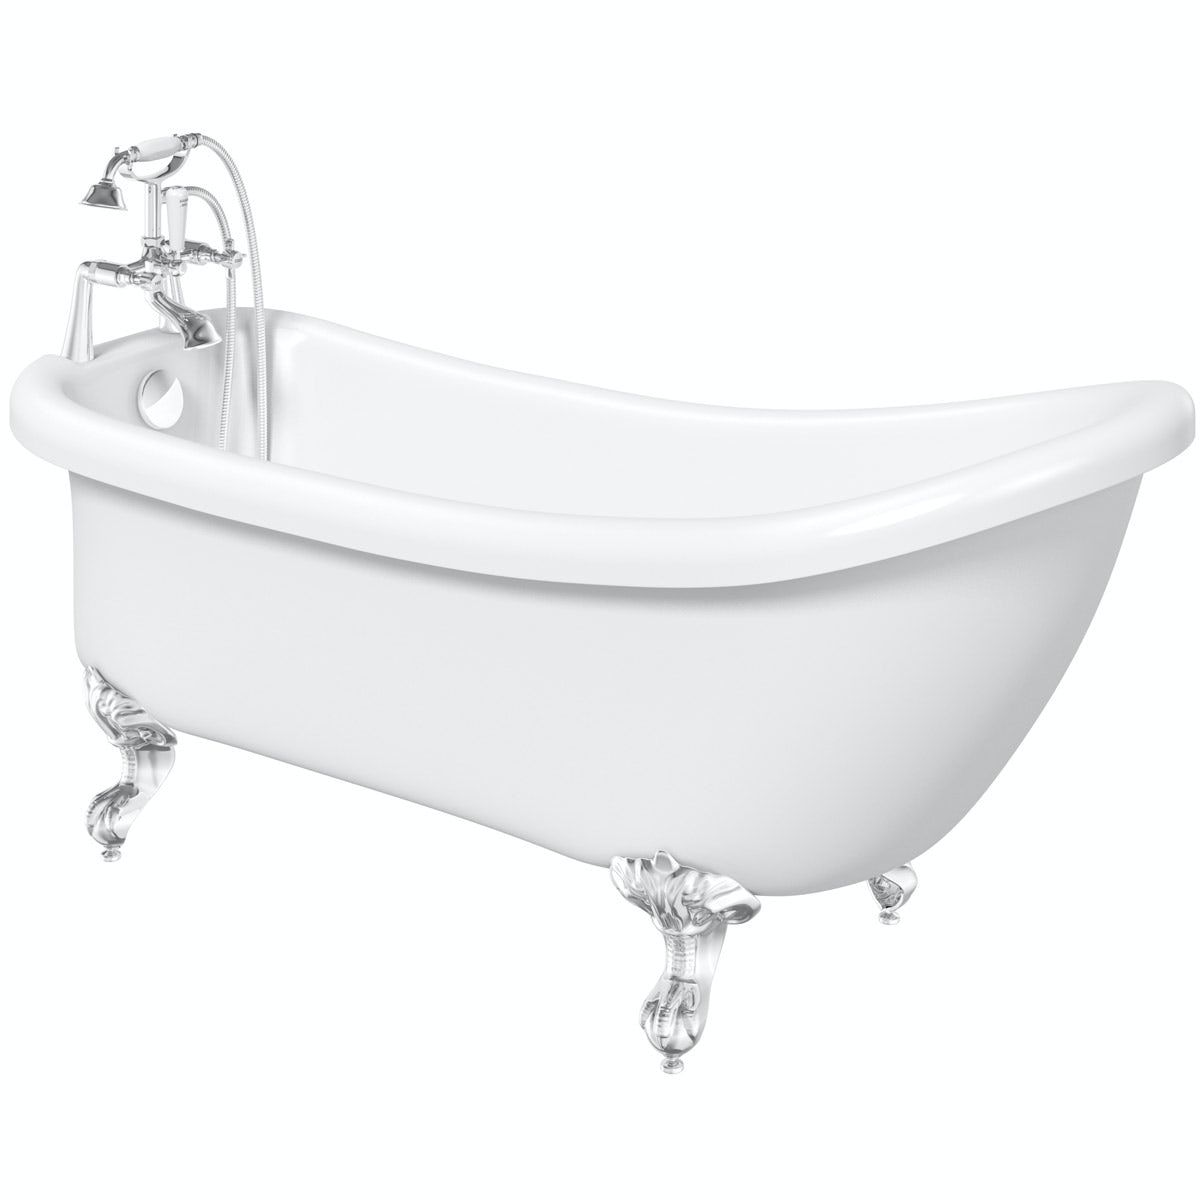 The Bath Co. Winchester roll top bath with ball and claw feet 1500 x 720